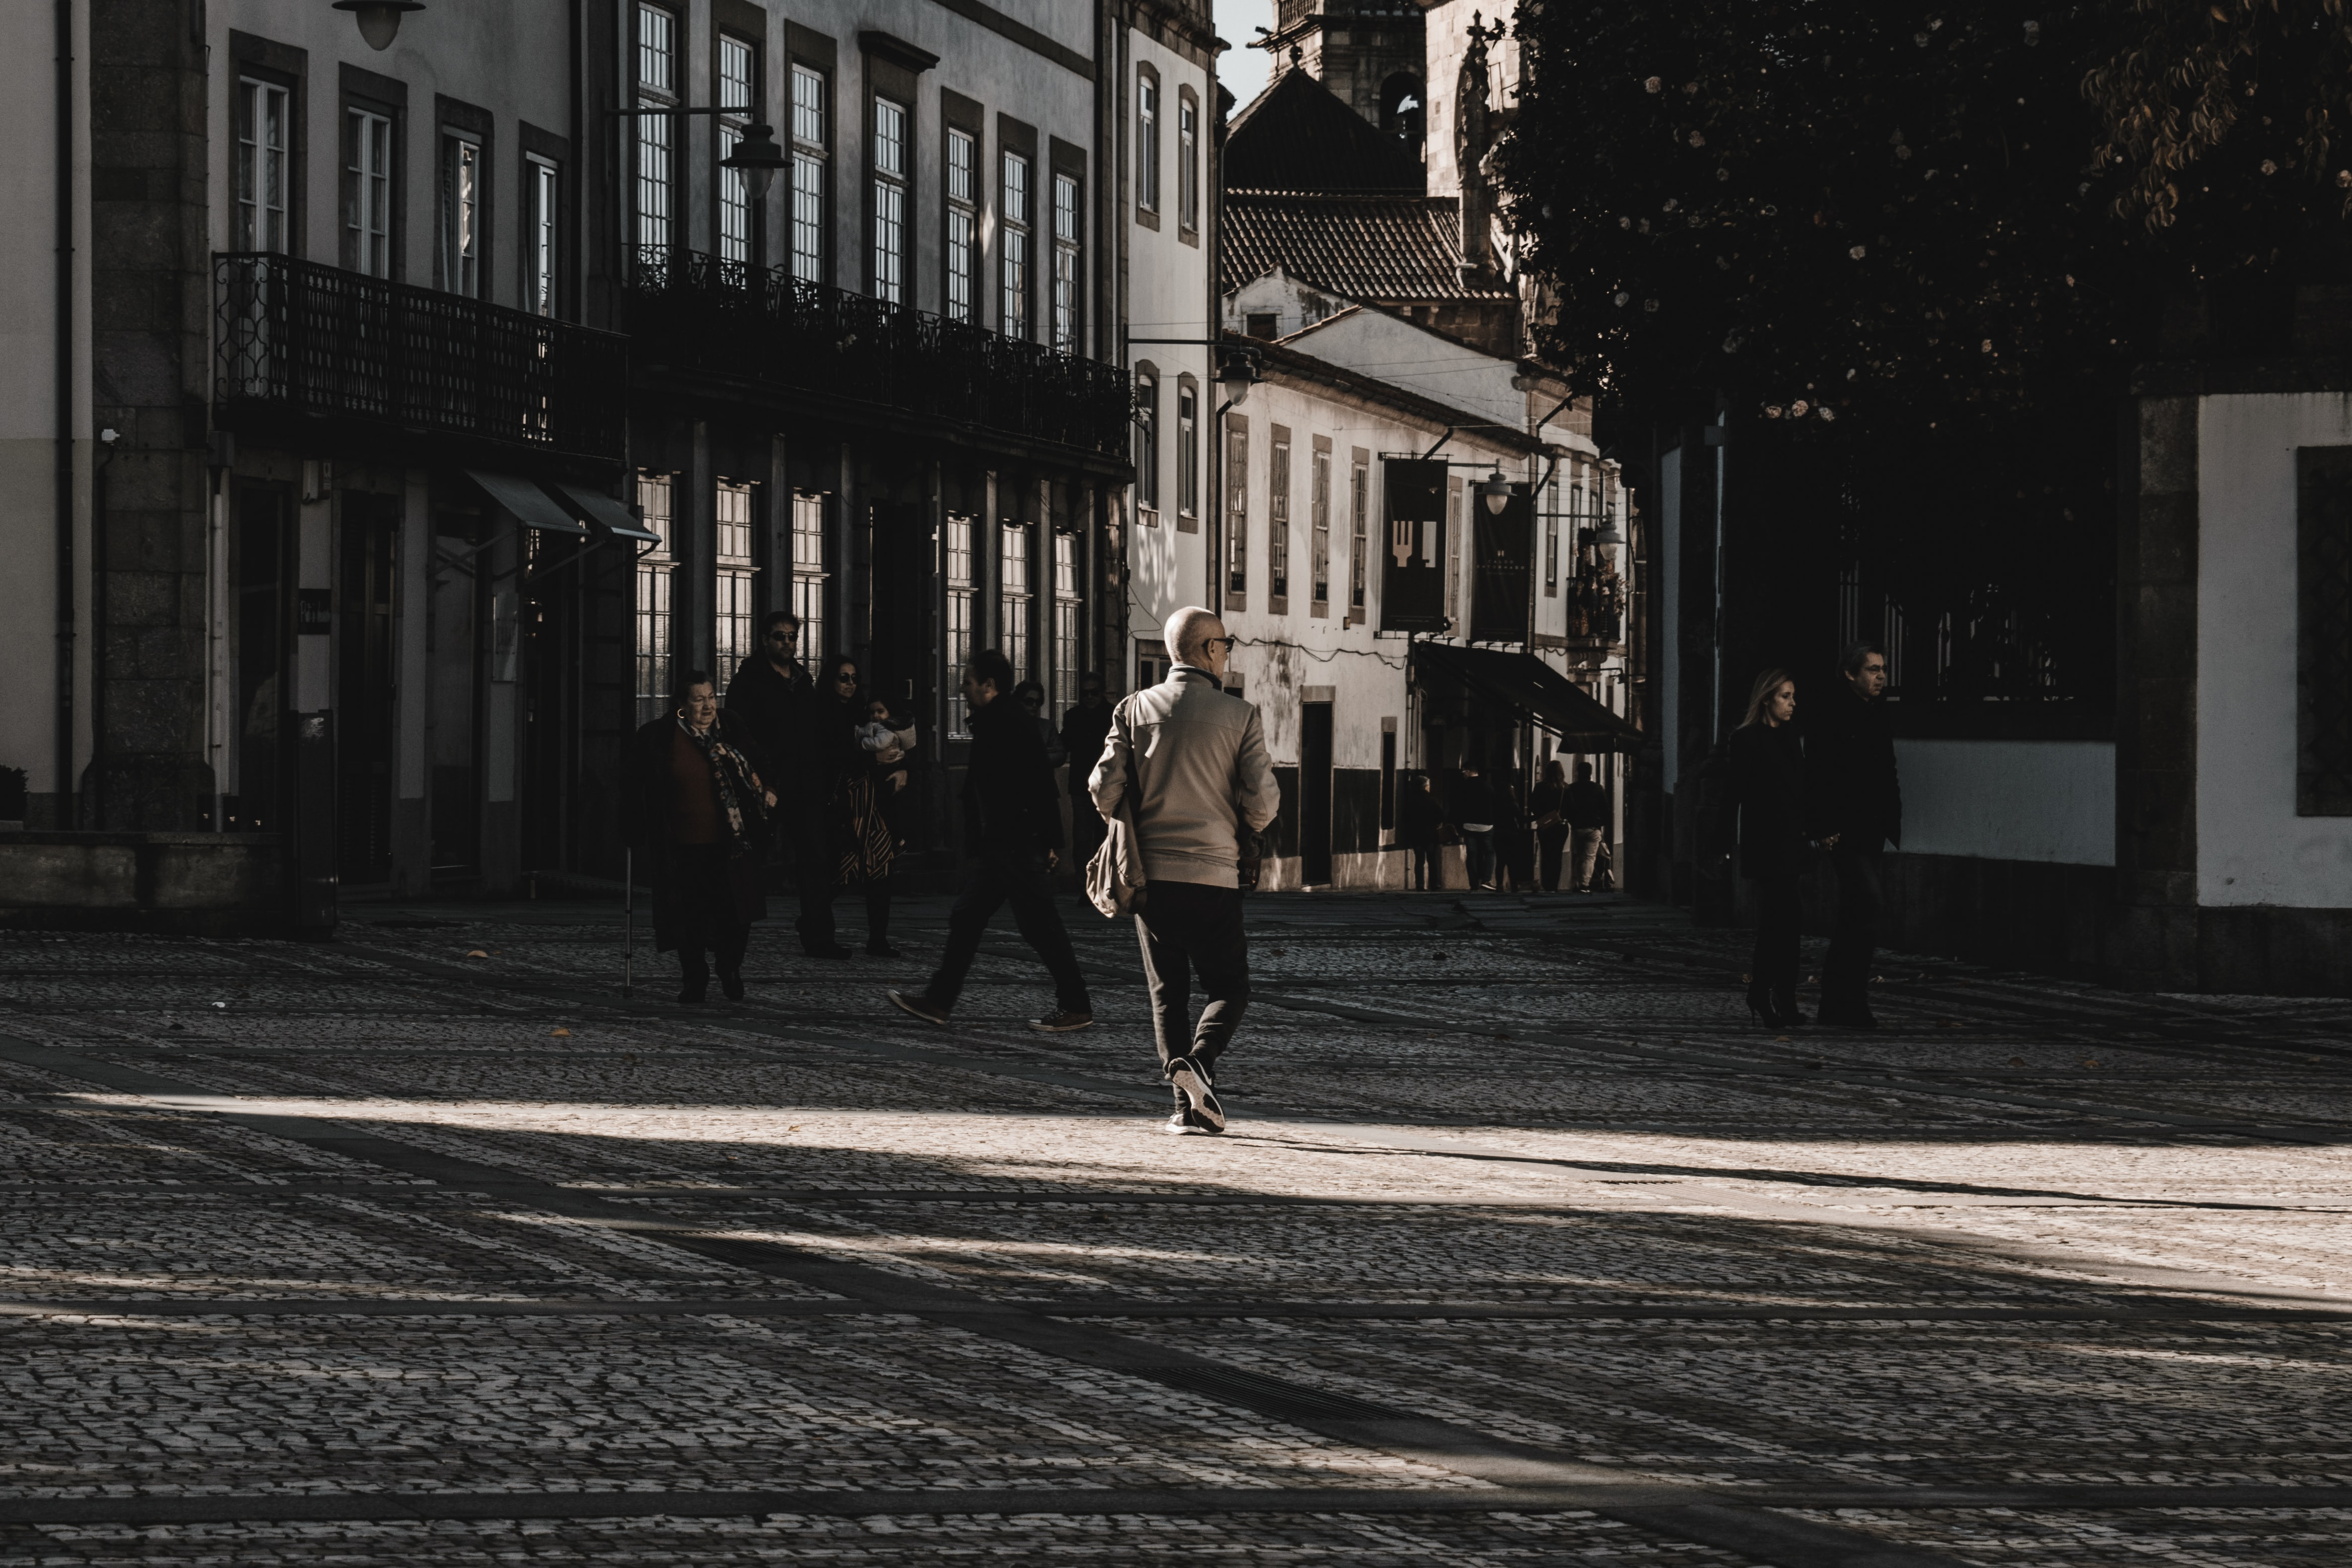 person walking on road